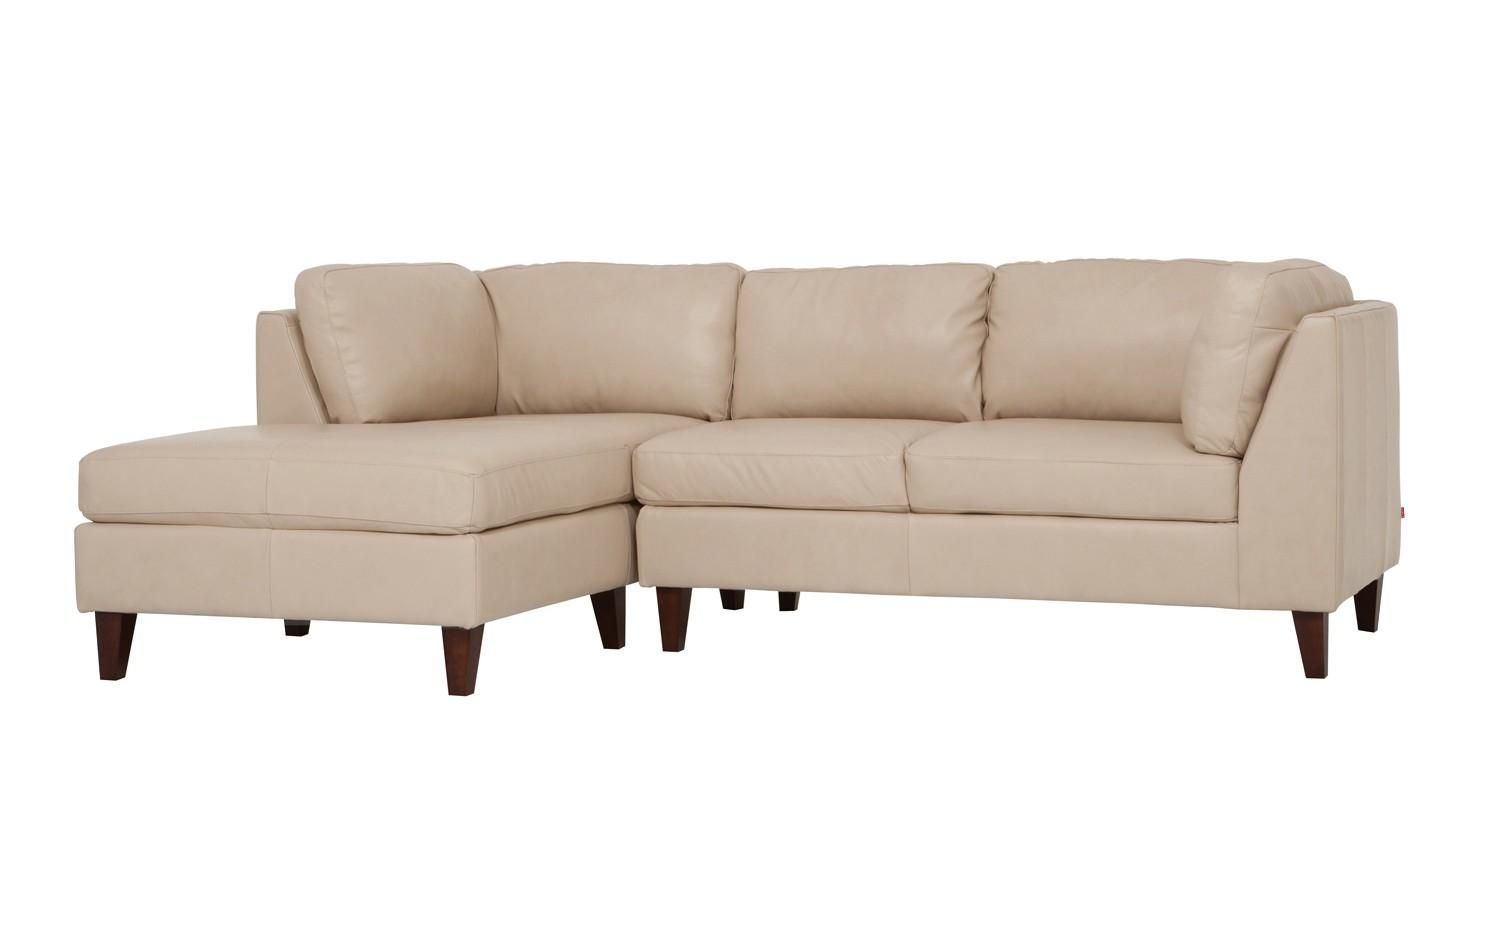 Salema Leather 2 Piece Sectional Sofa With Chaise | Viesso Intended For Sectional Sofa With 2 Chaises (View 14 of 20)